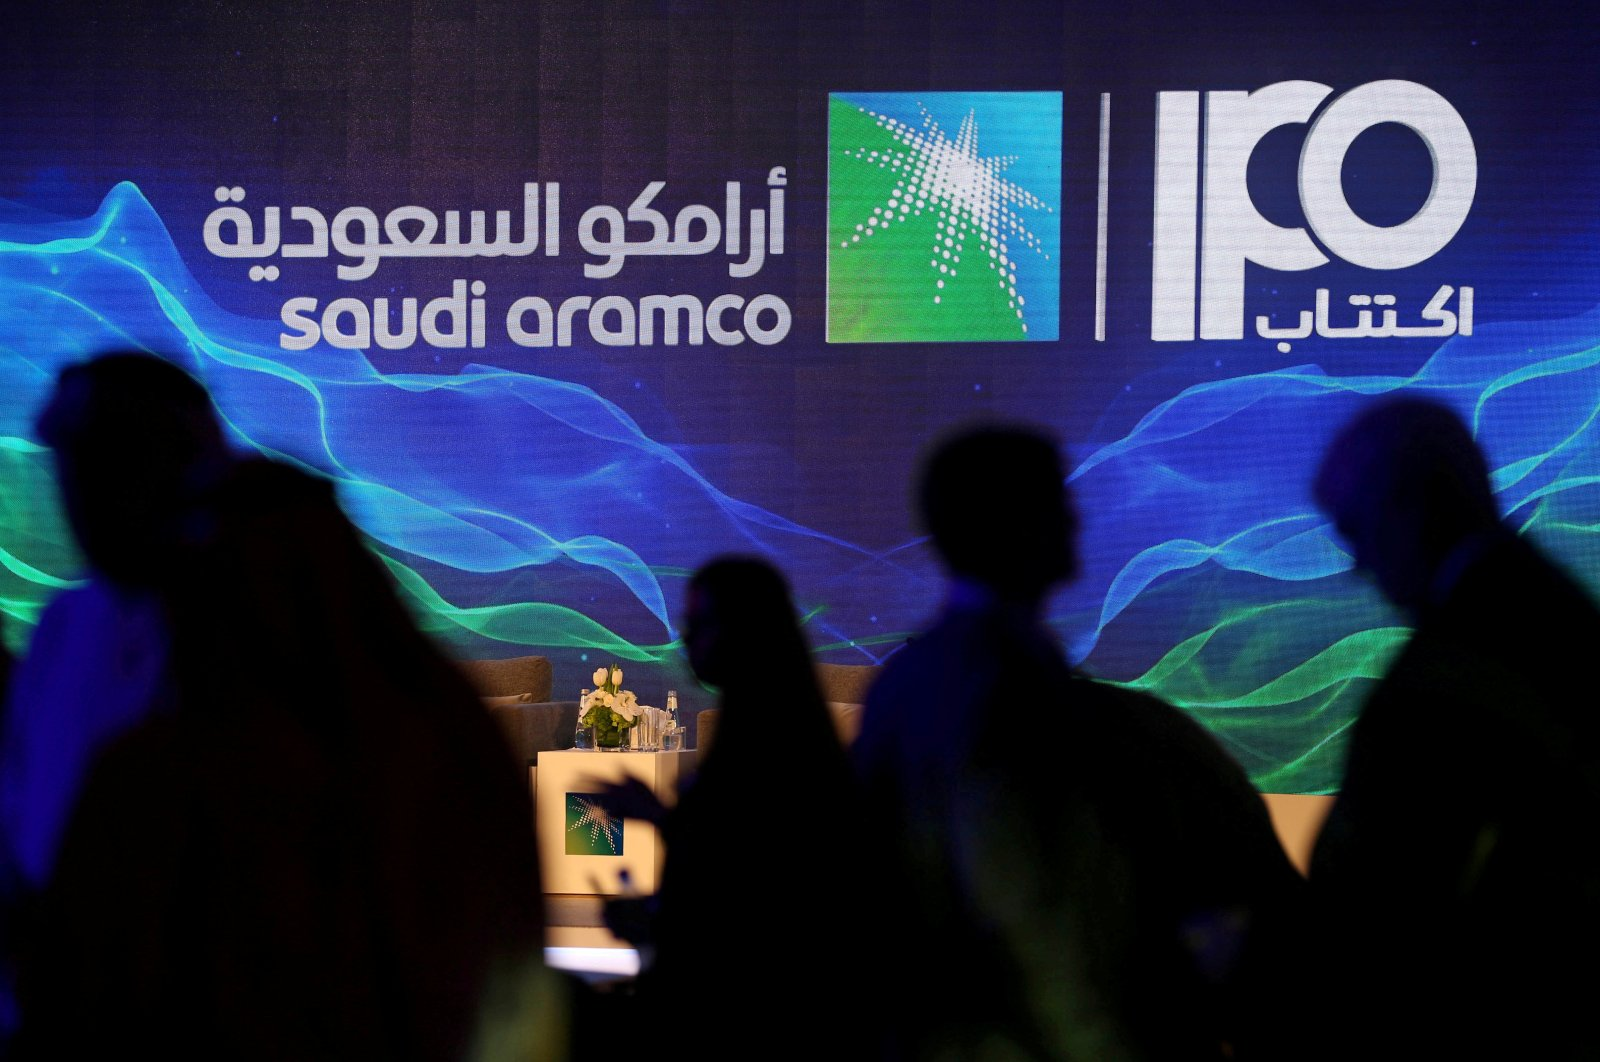 A sign of Saudi Aramco's initial public offering (IPO) is seen during a news conference by the state oil company at the Plaza Conference Center in Dhahran, Saudi Arabia, Nov. 3, 2019. (Reuters Photo)